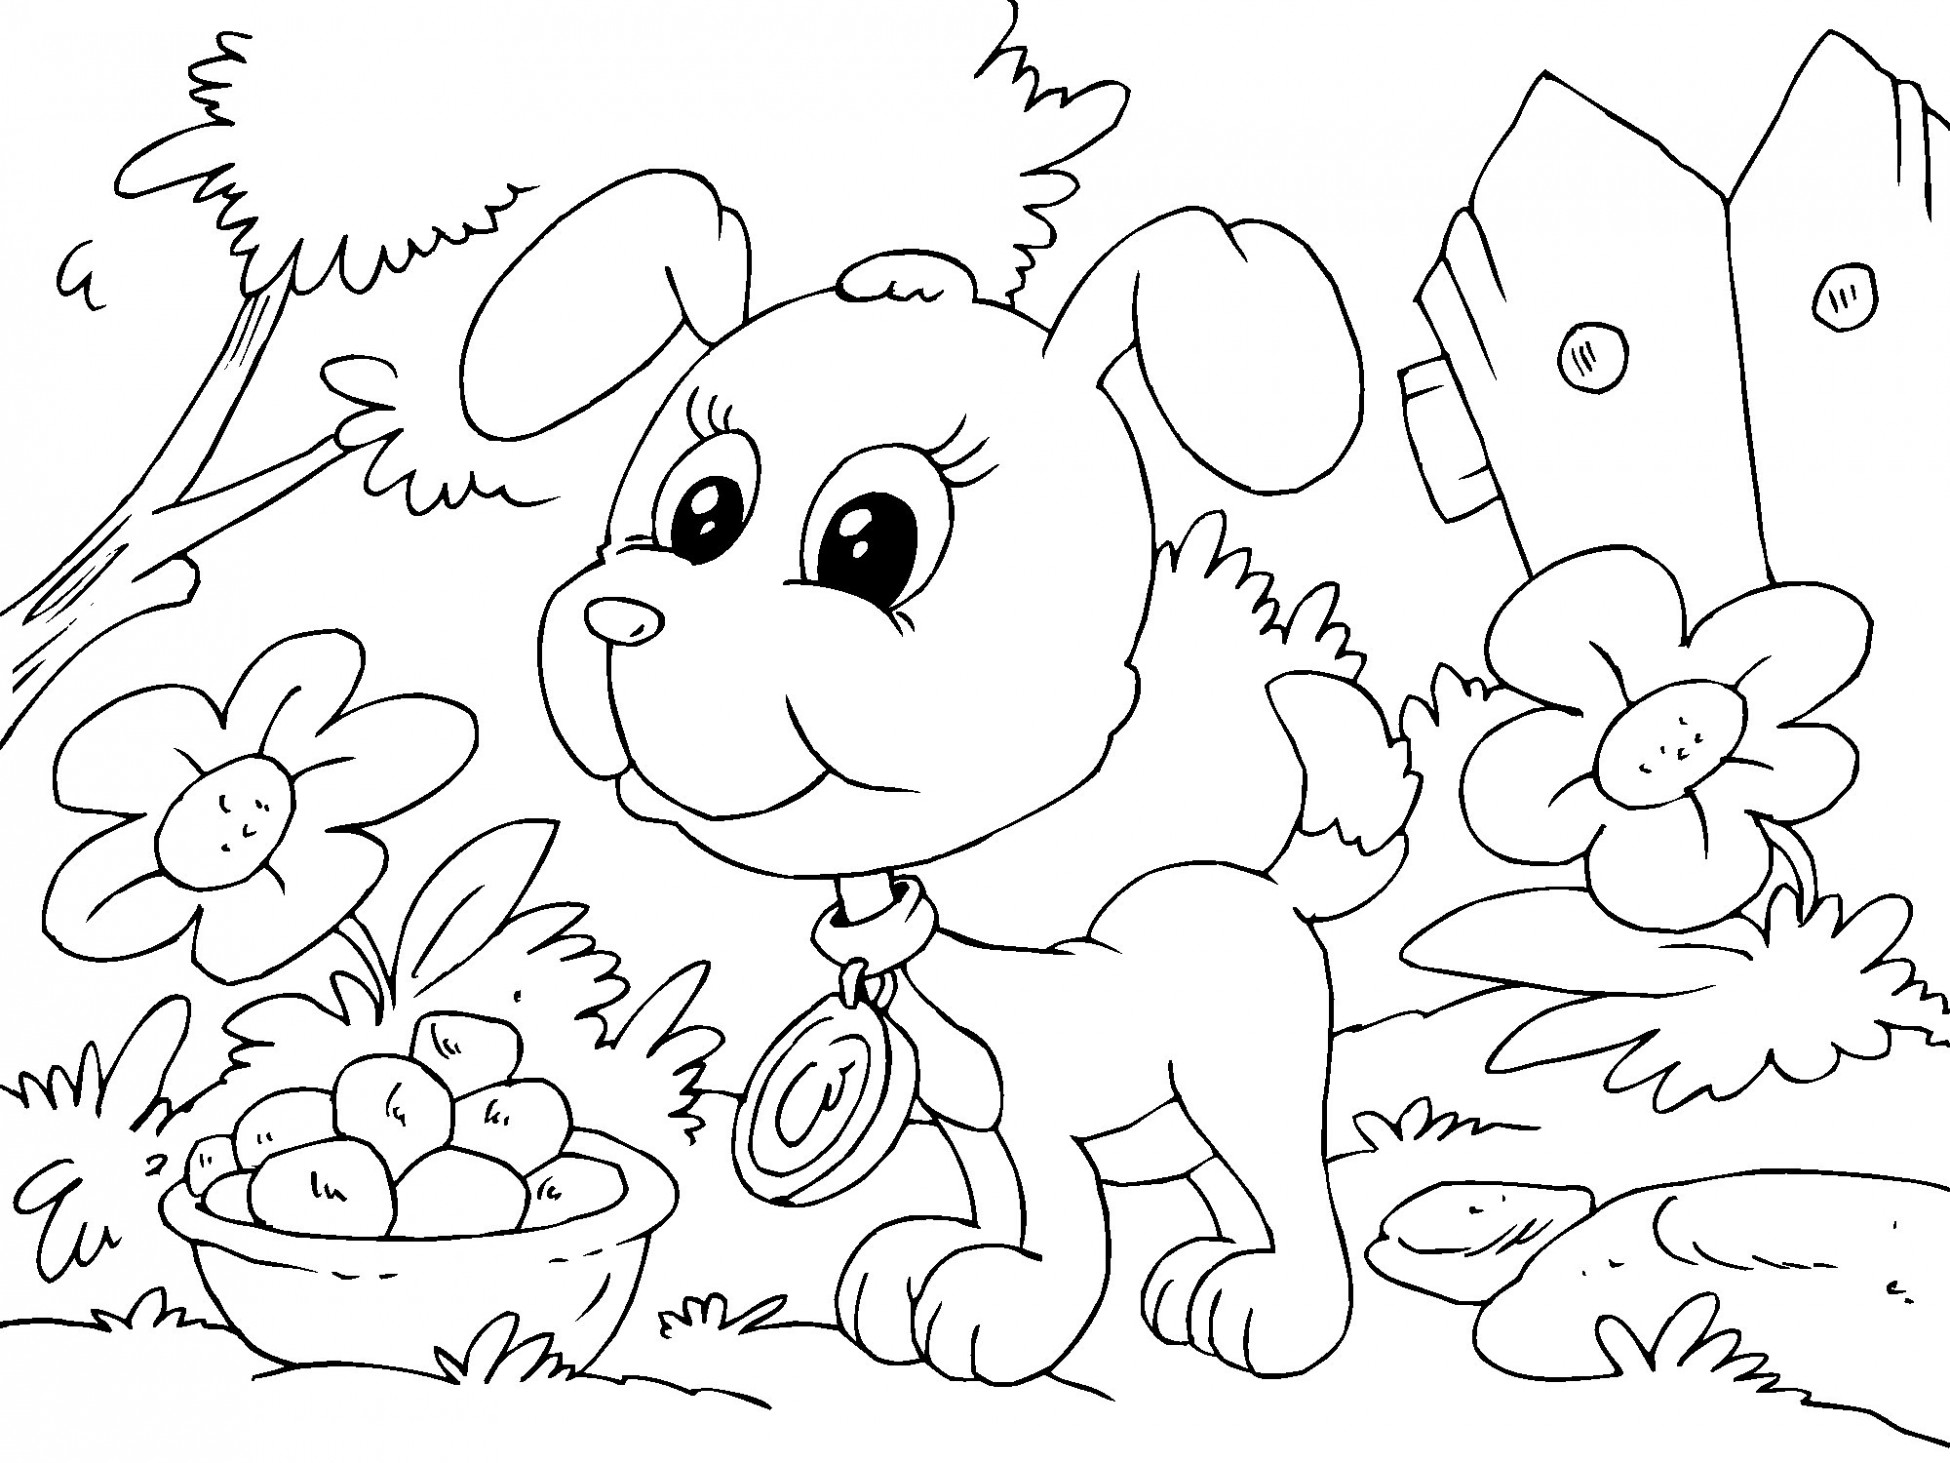 Sad Puppy Coloring Pages At Getdrawings Com Free For Personal Use